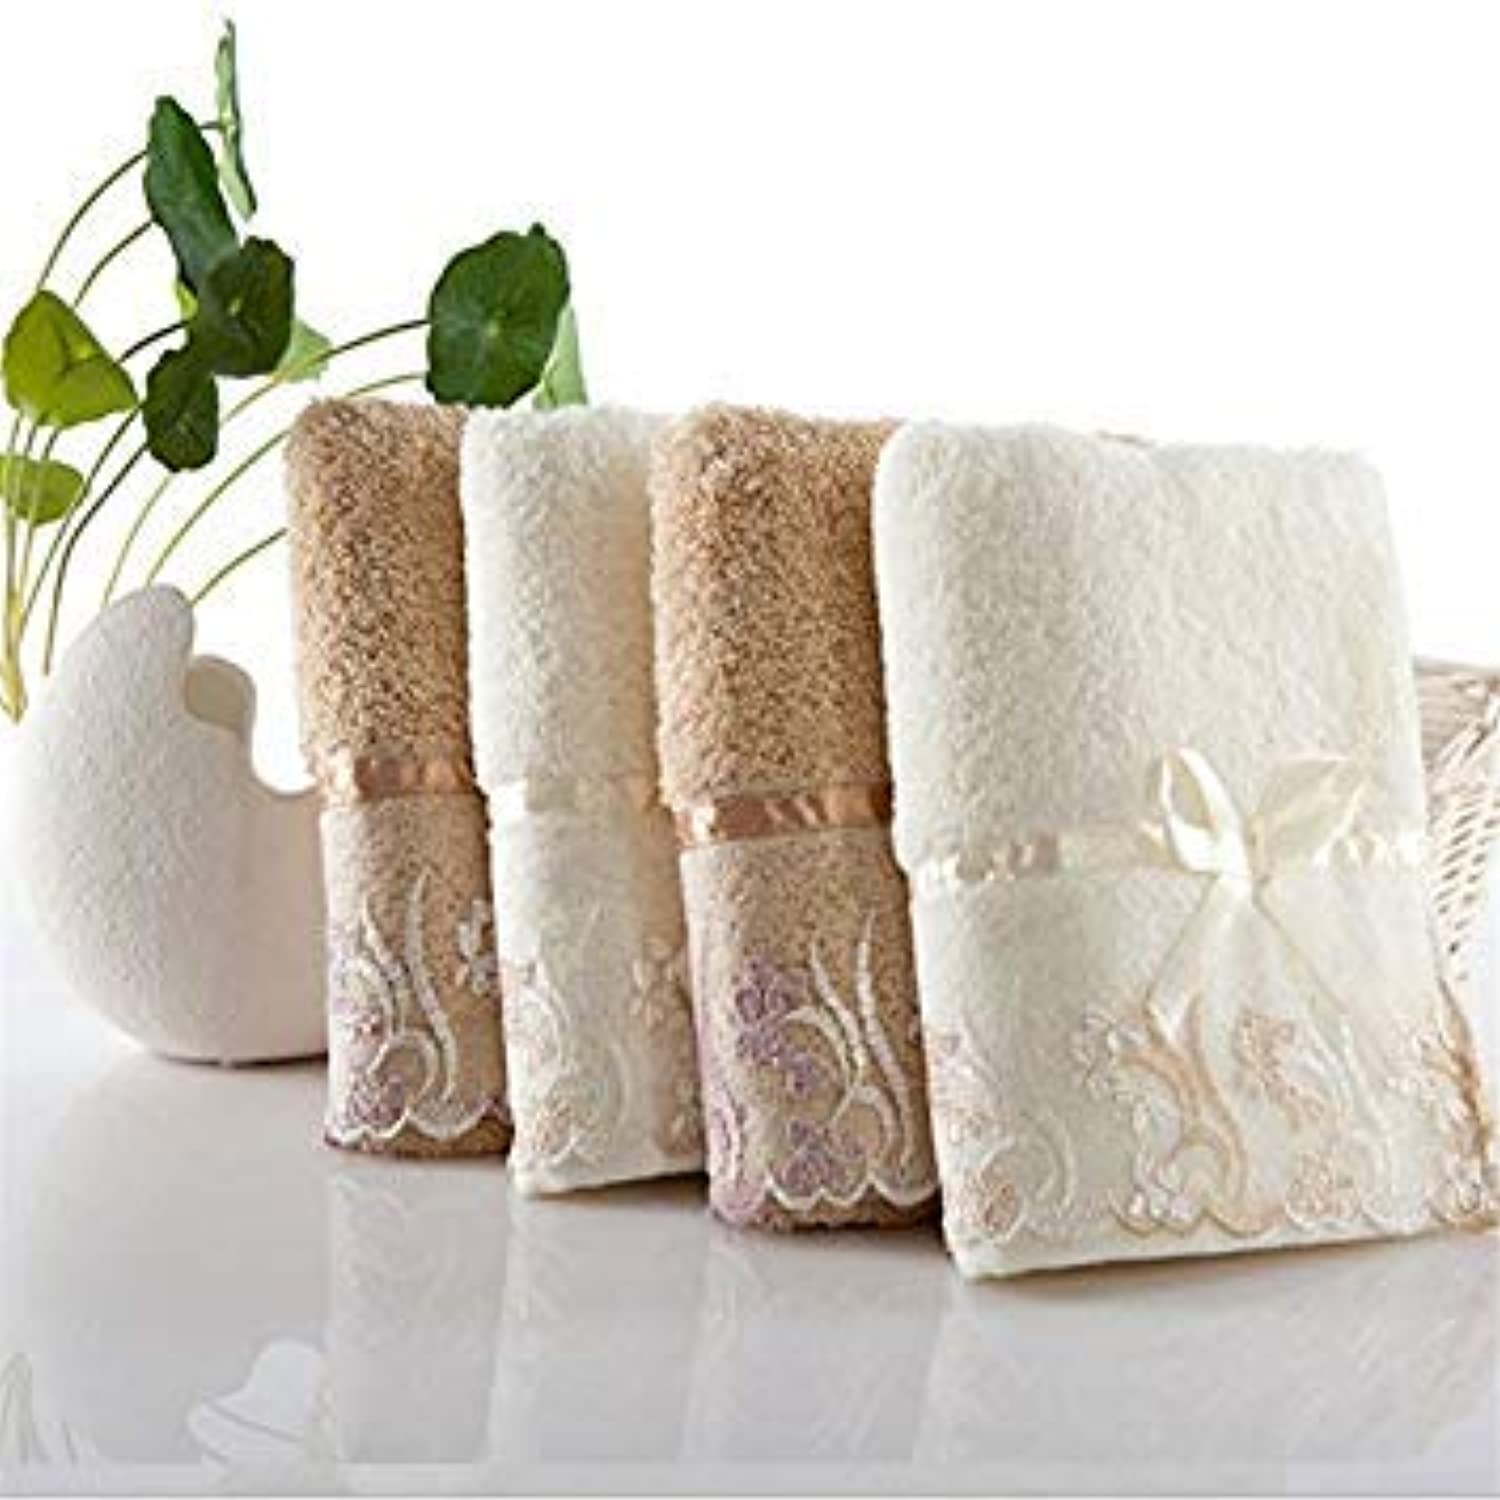 Coffee, 34x72 70x138 34x34   3pcs Set 100% Cotton Absorbent Bath Towel Classic Lace Embroidery Face Towel Antibacterial Soft Comfortable Washcloth Set